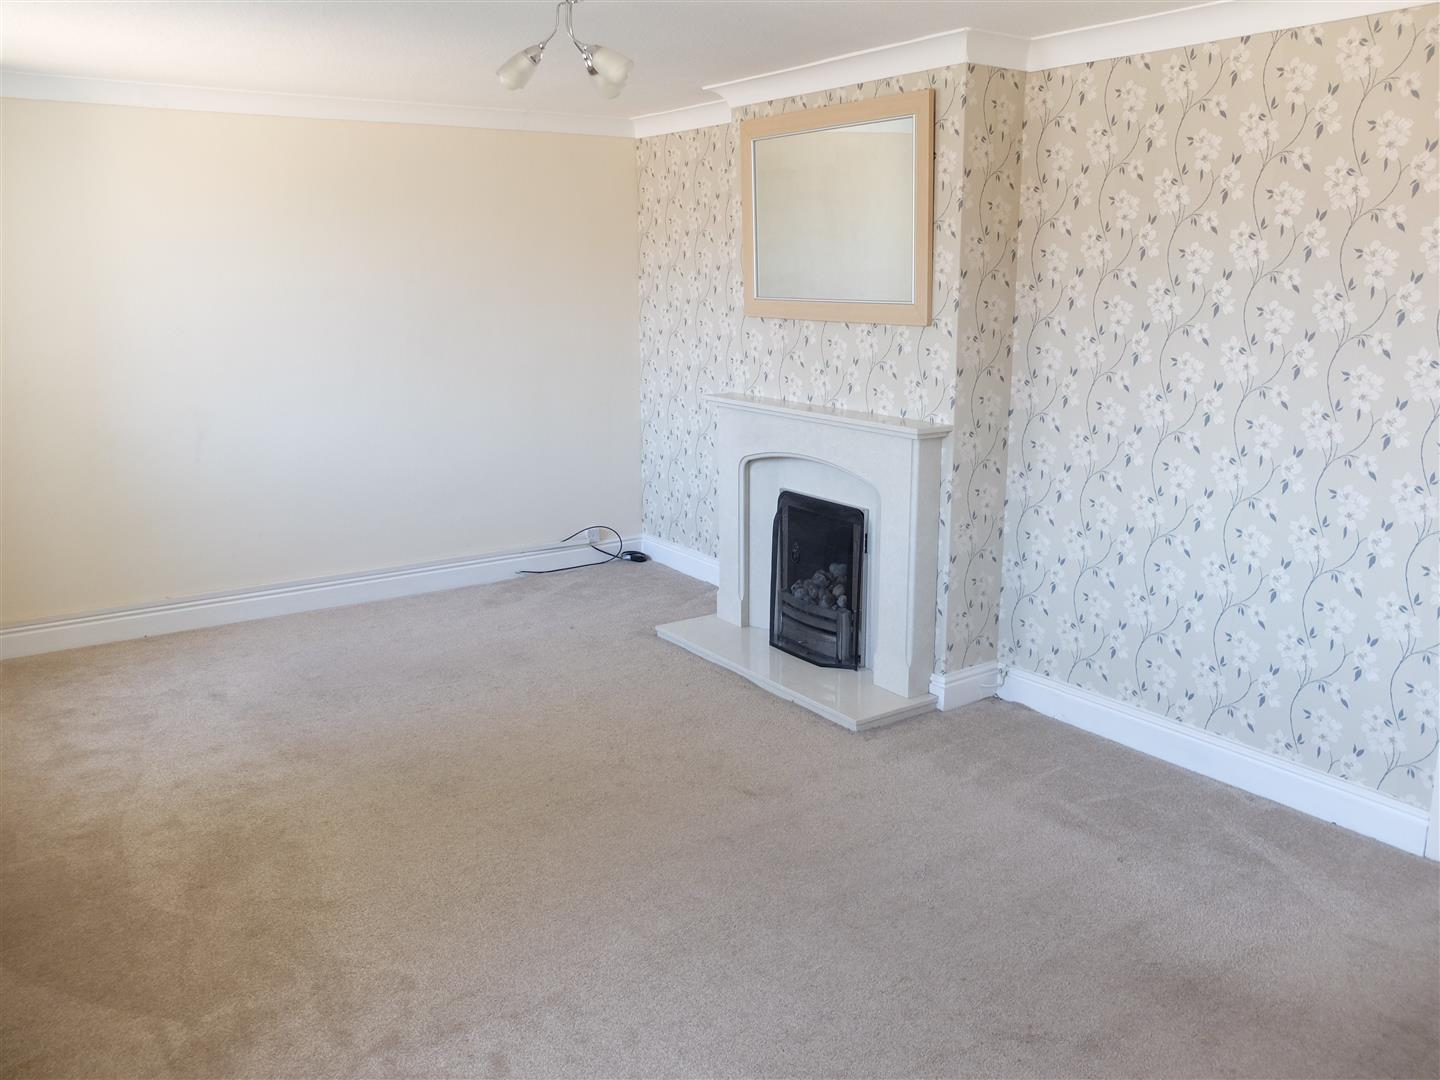 2 Bedrooms House - Semi-Detached For Sale 1 Glendale Rise Carlisle